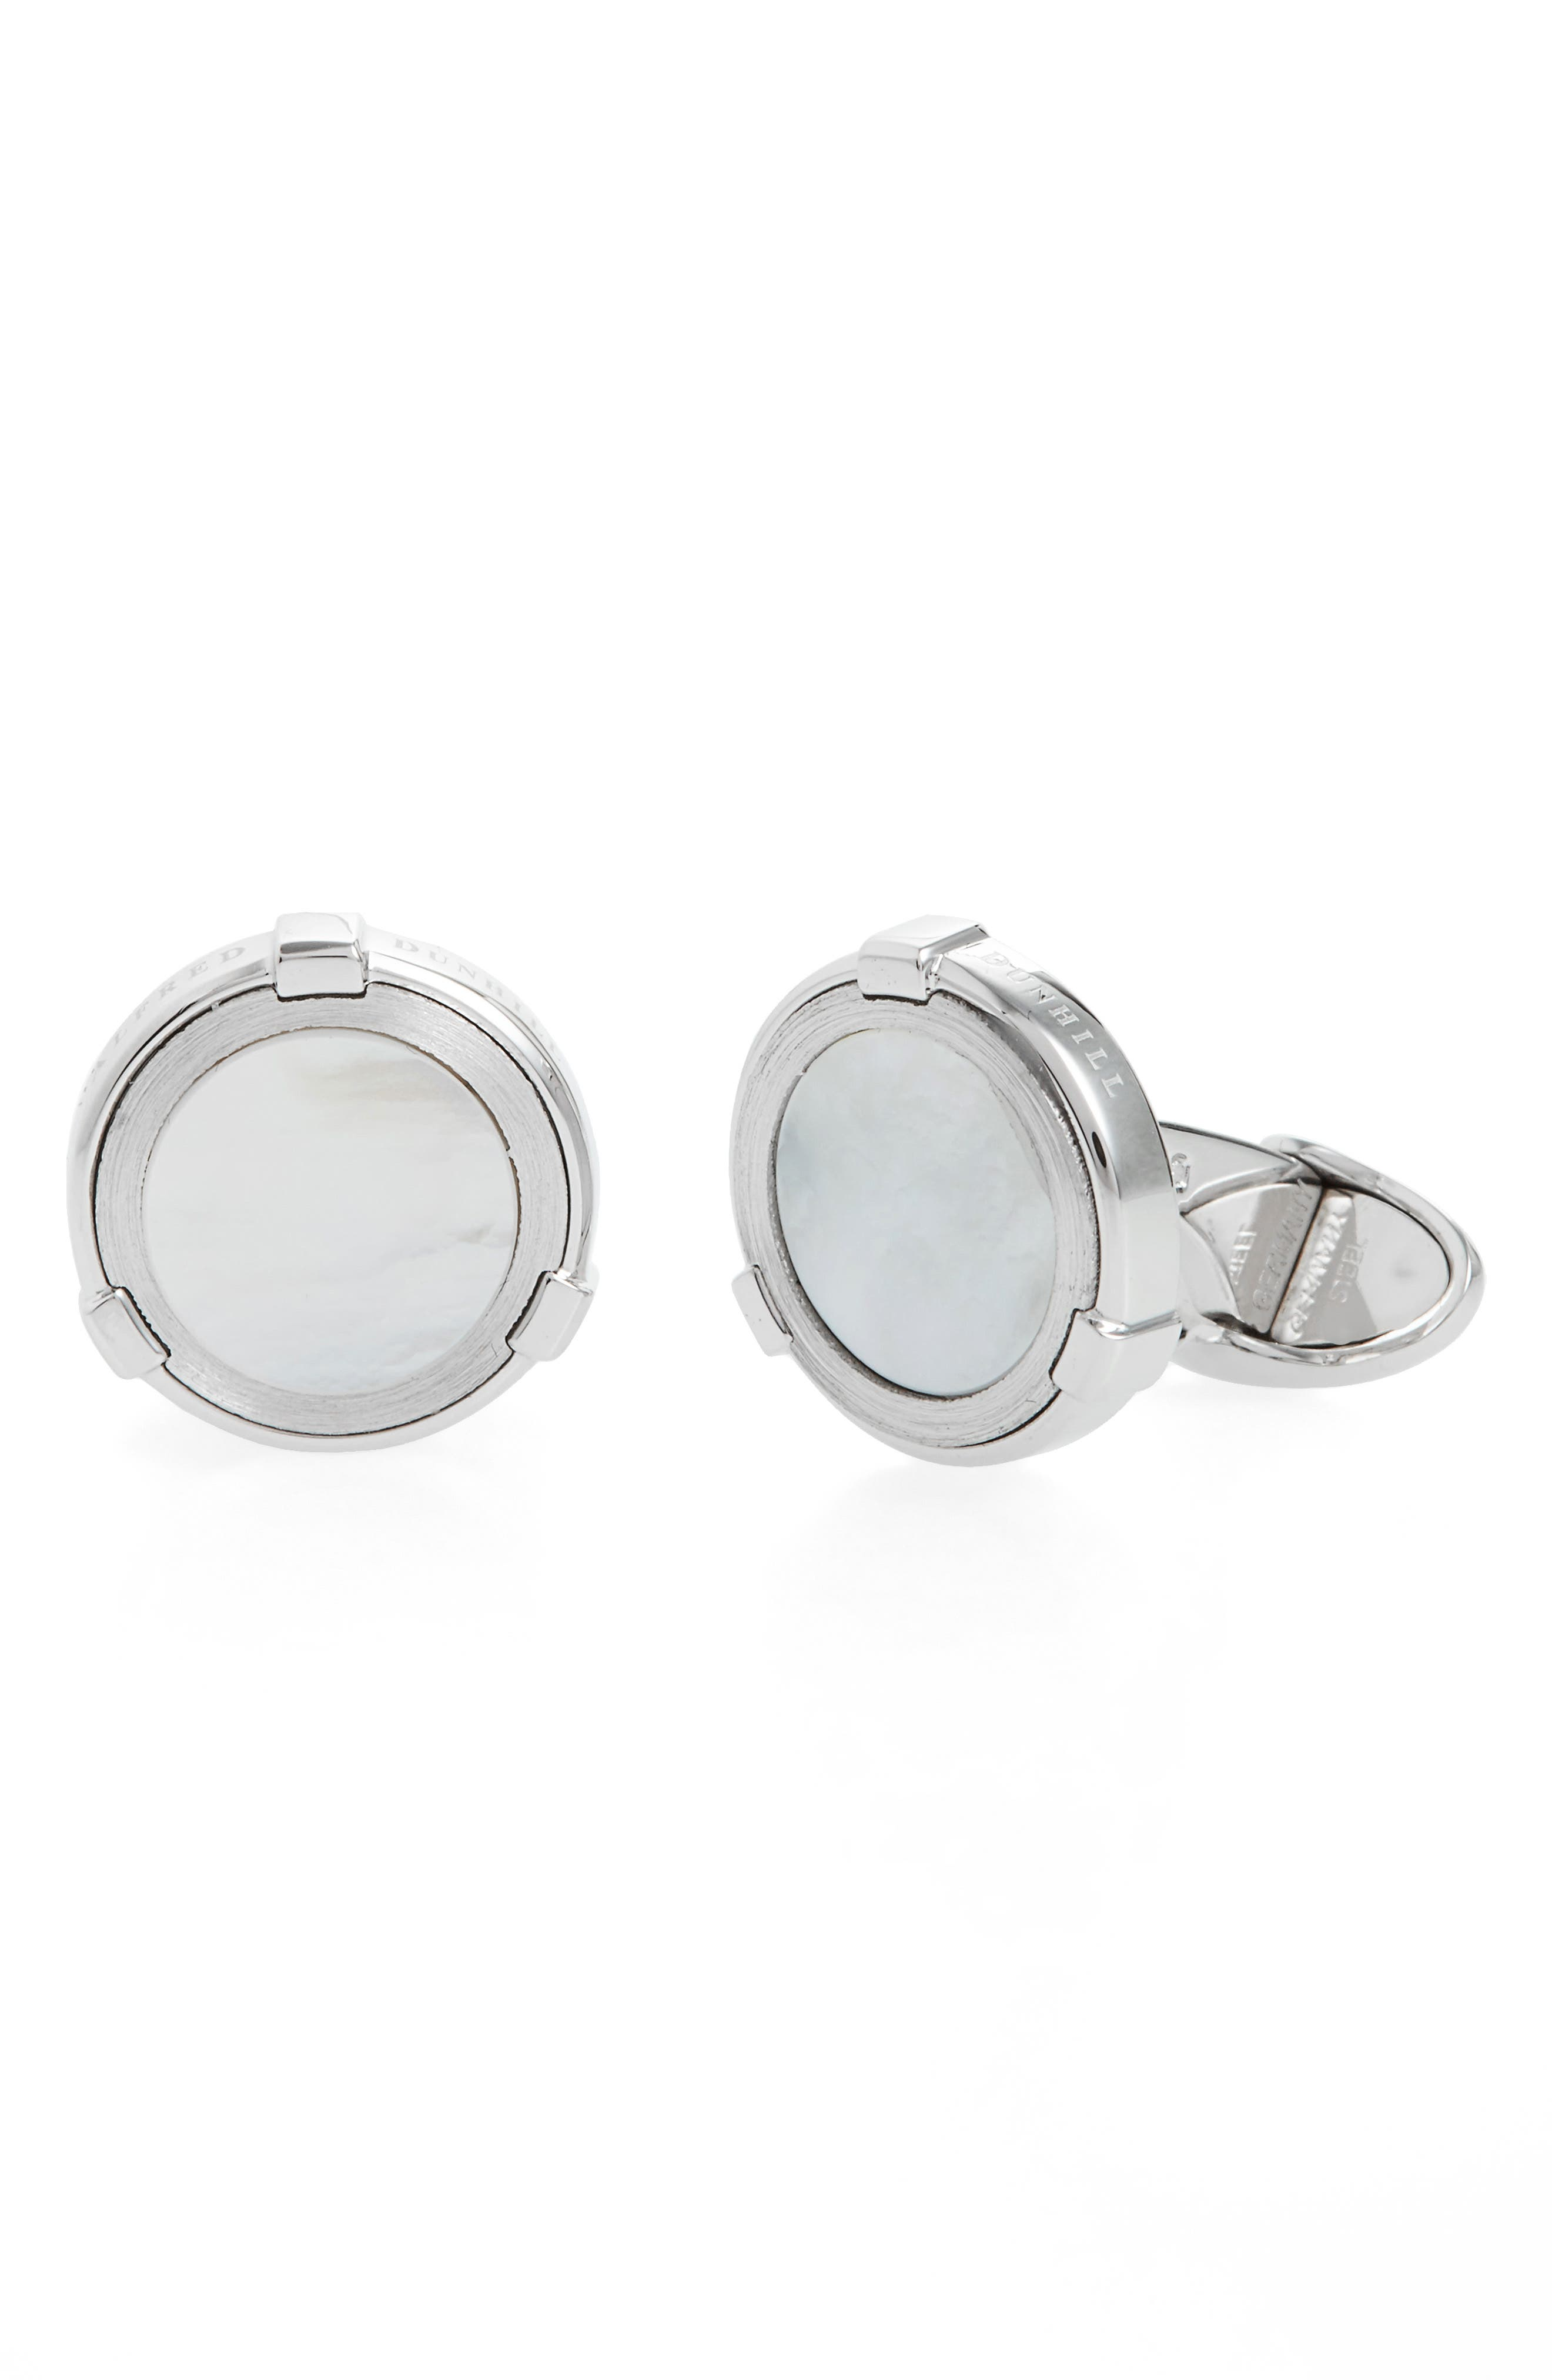 Latch Cuff Links,                         Main,                         color, Mother Of Pearl/Silver